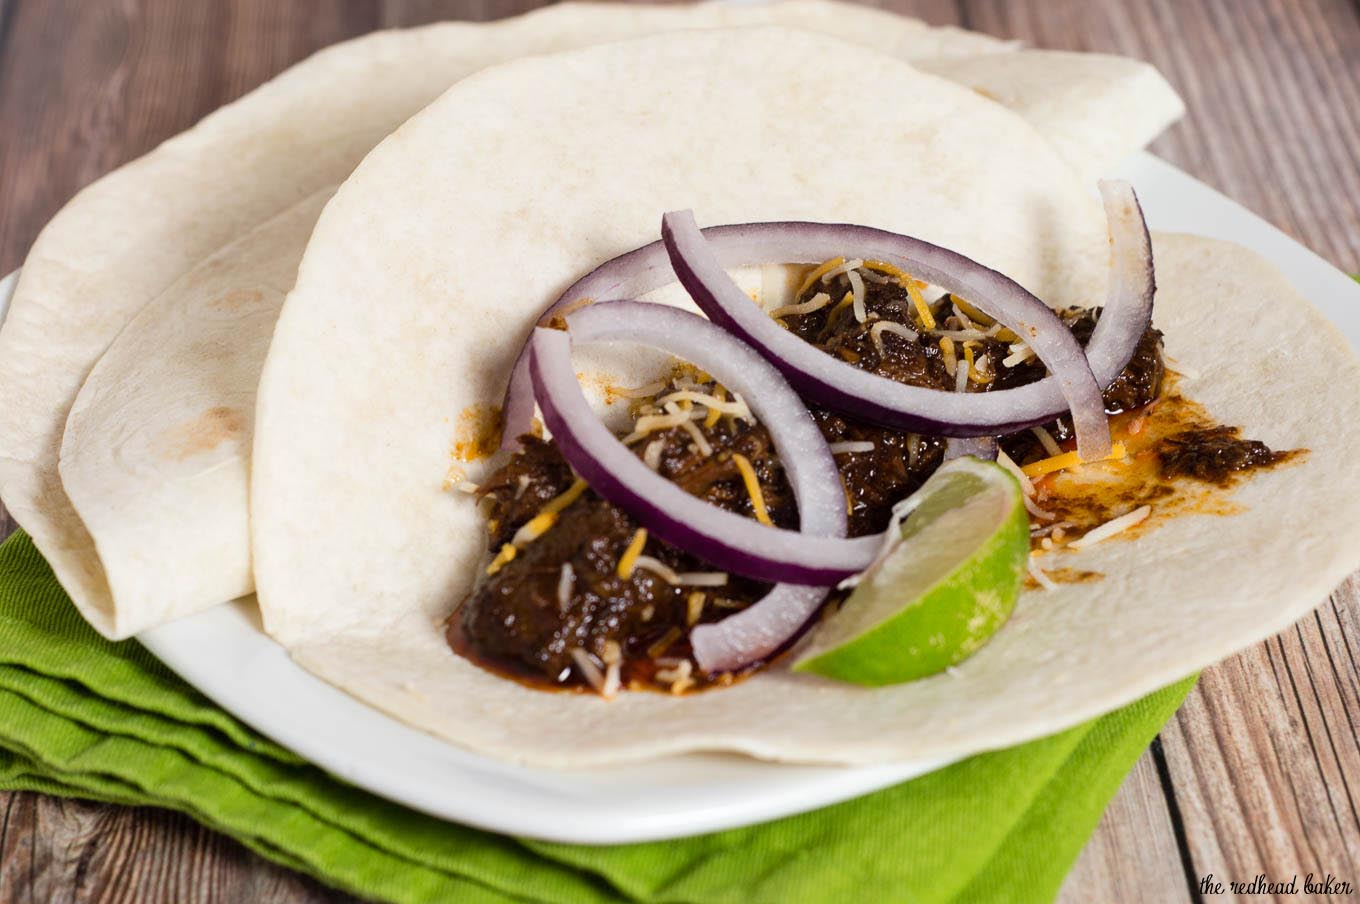 Authentic barbacoa beef tacos are piled with shredded beef cooked low and slow in chili-pepper spiced sauce, and topped with cilantro, salsa and lime wedges.